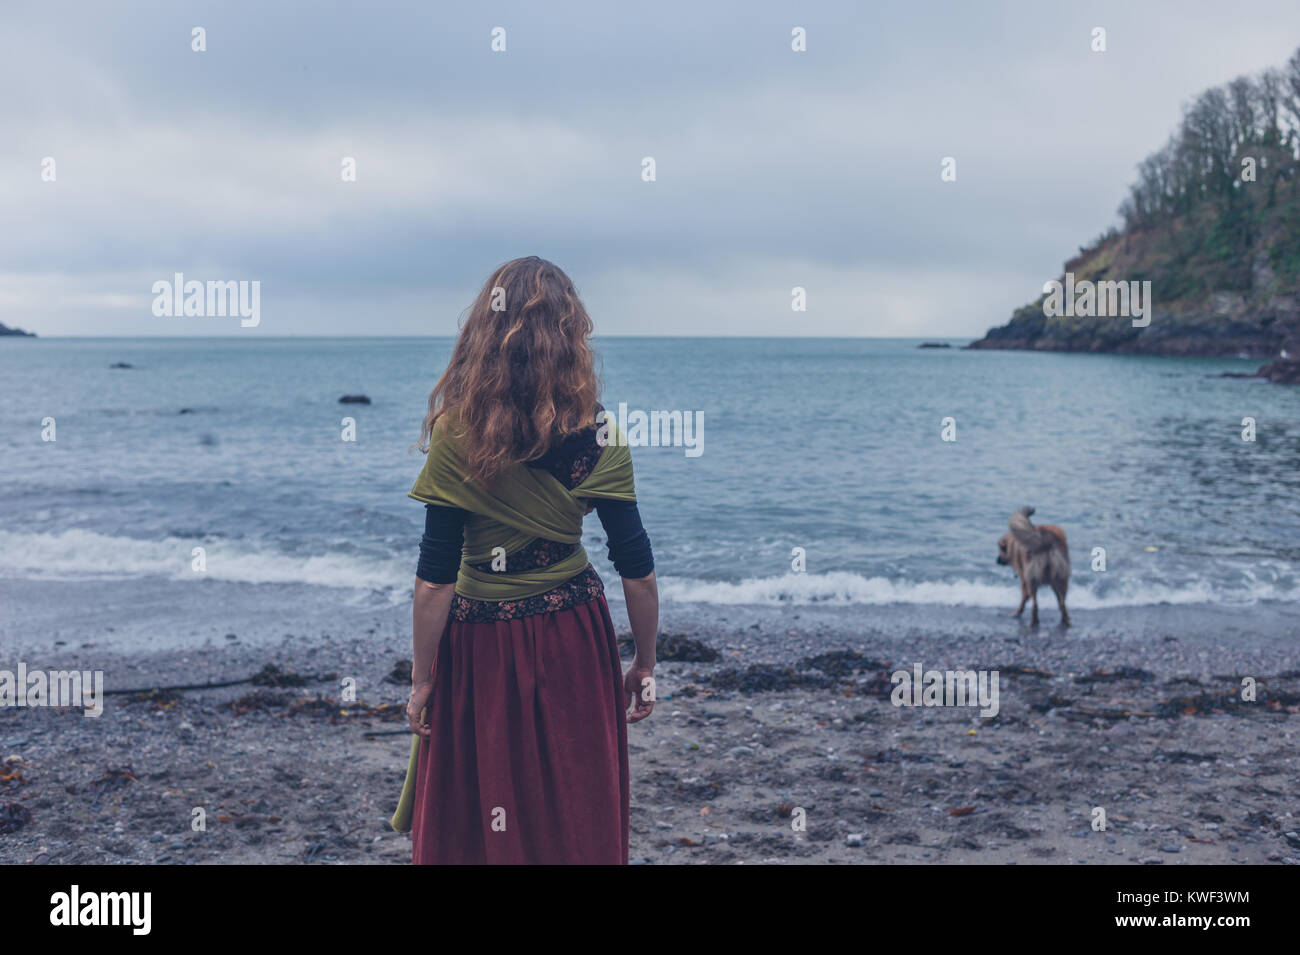 A young woman is walking her dog on the beach - Stock Image